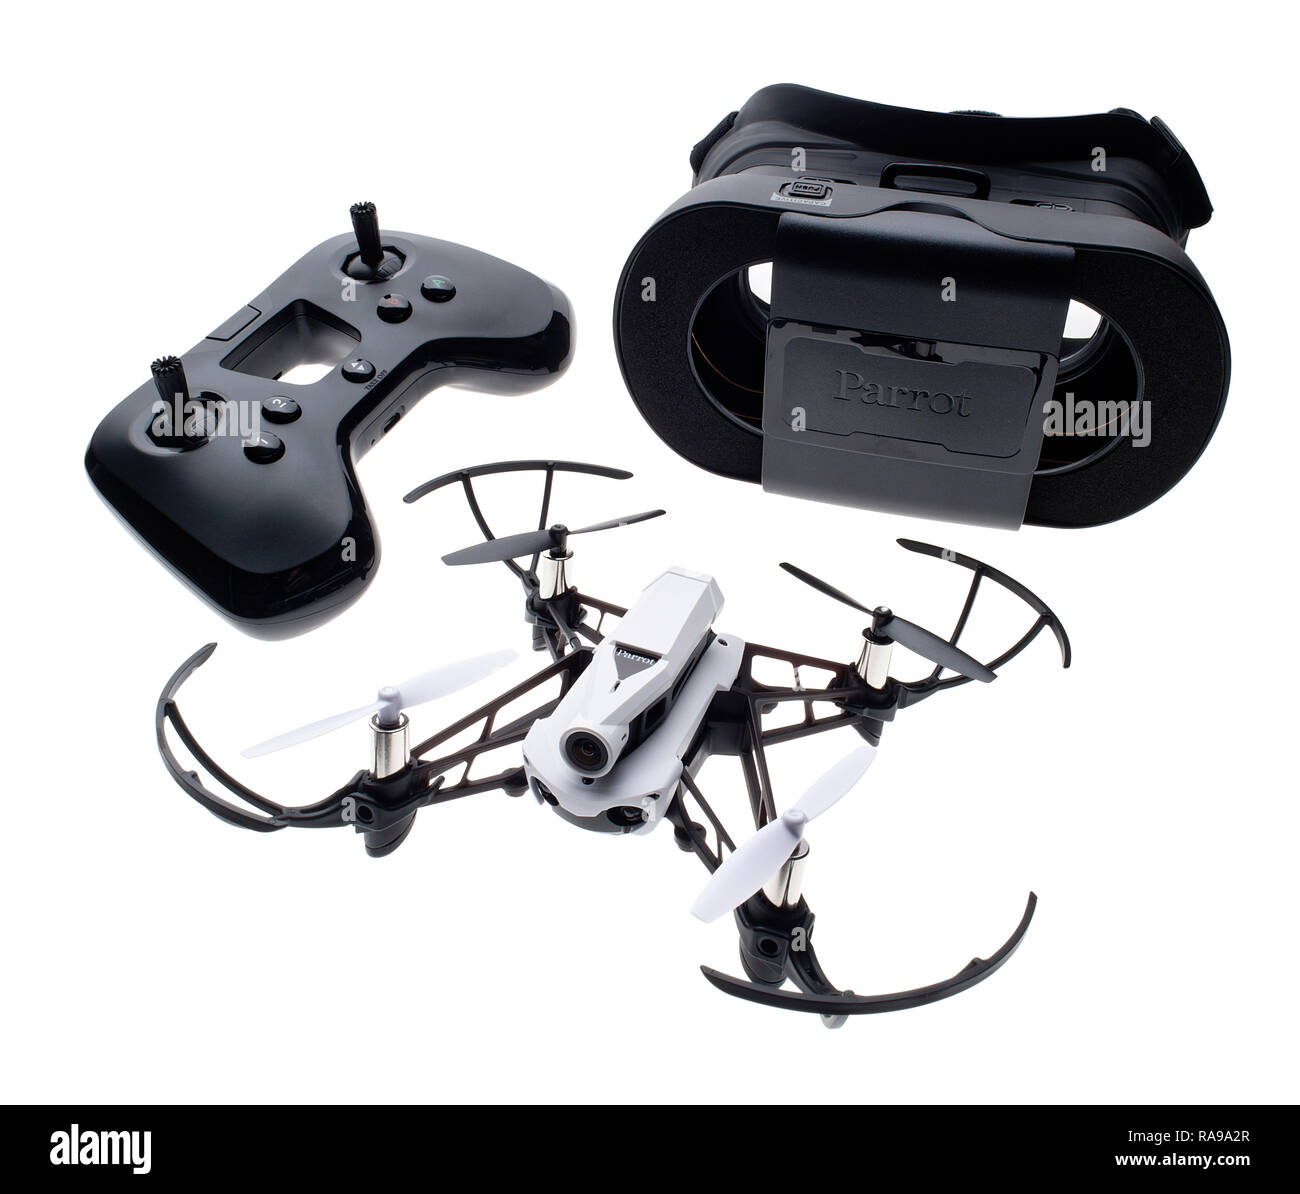 Parrot Mambo FPV drone with viewer and controller. - Stock Image